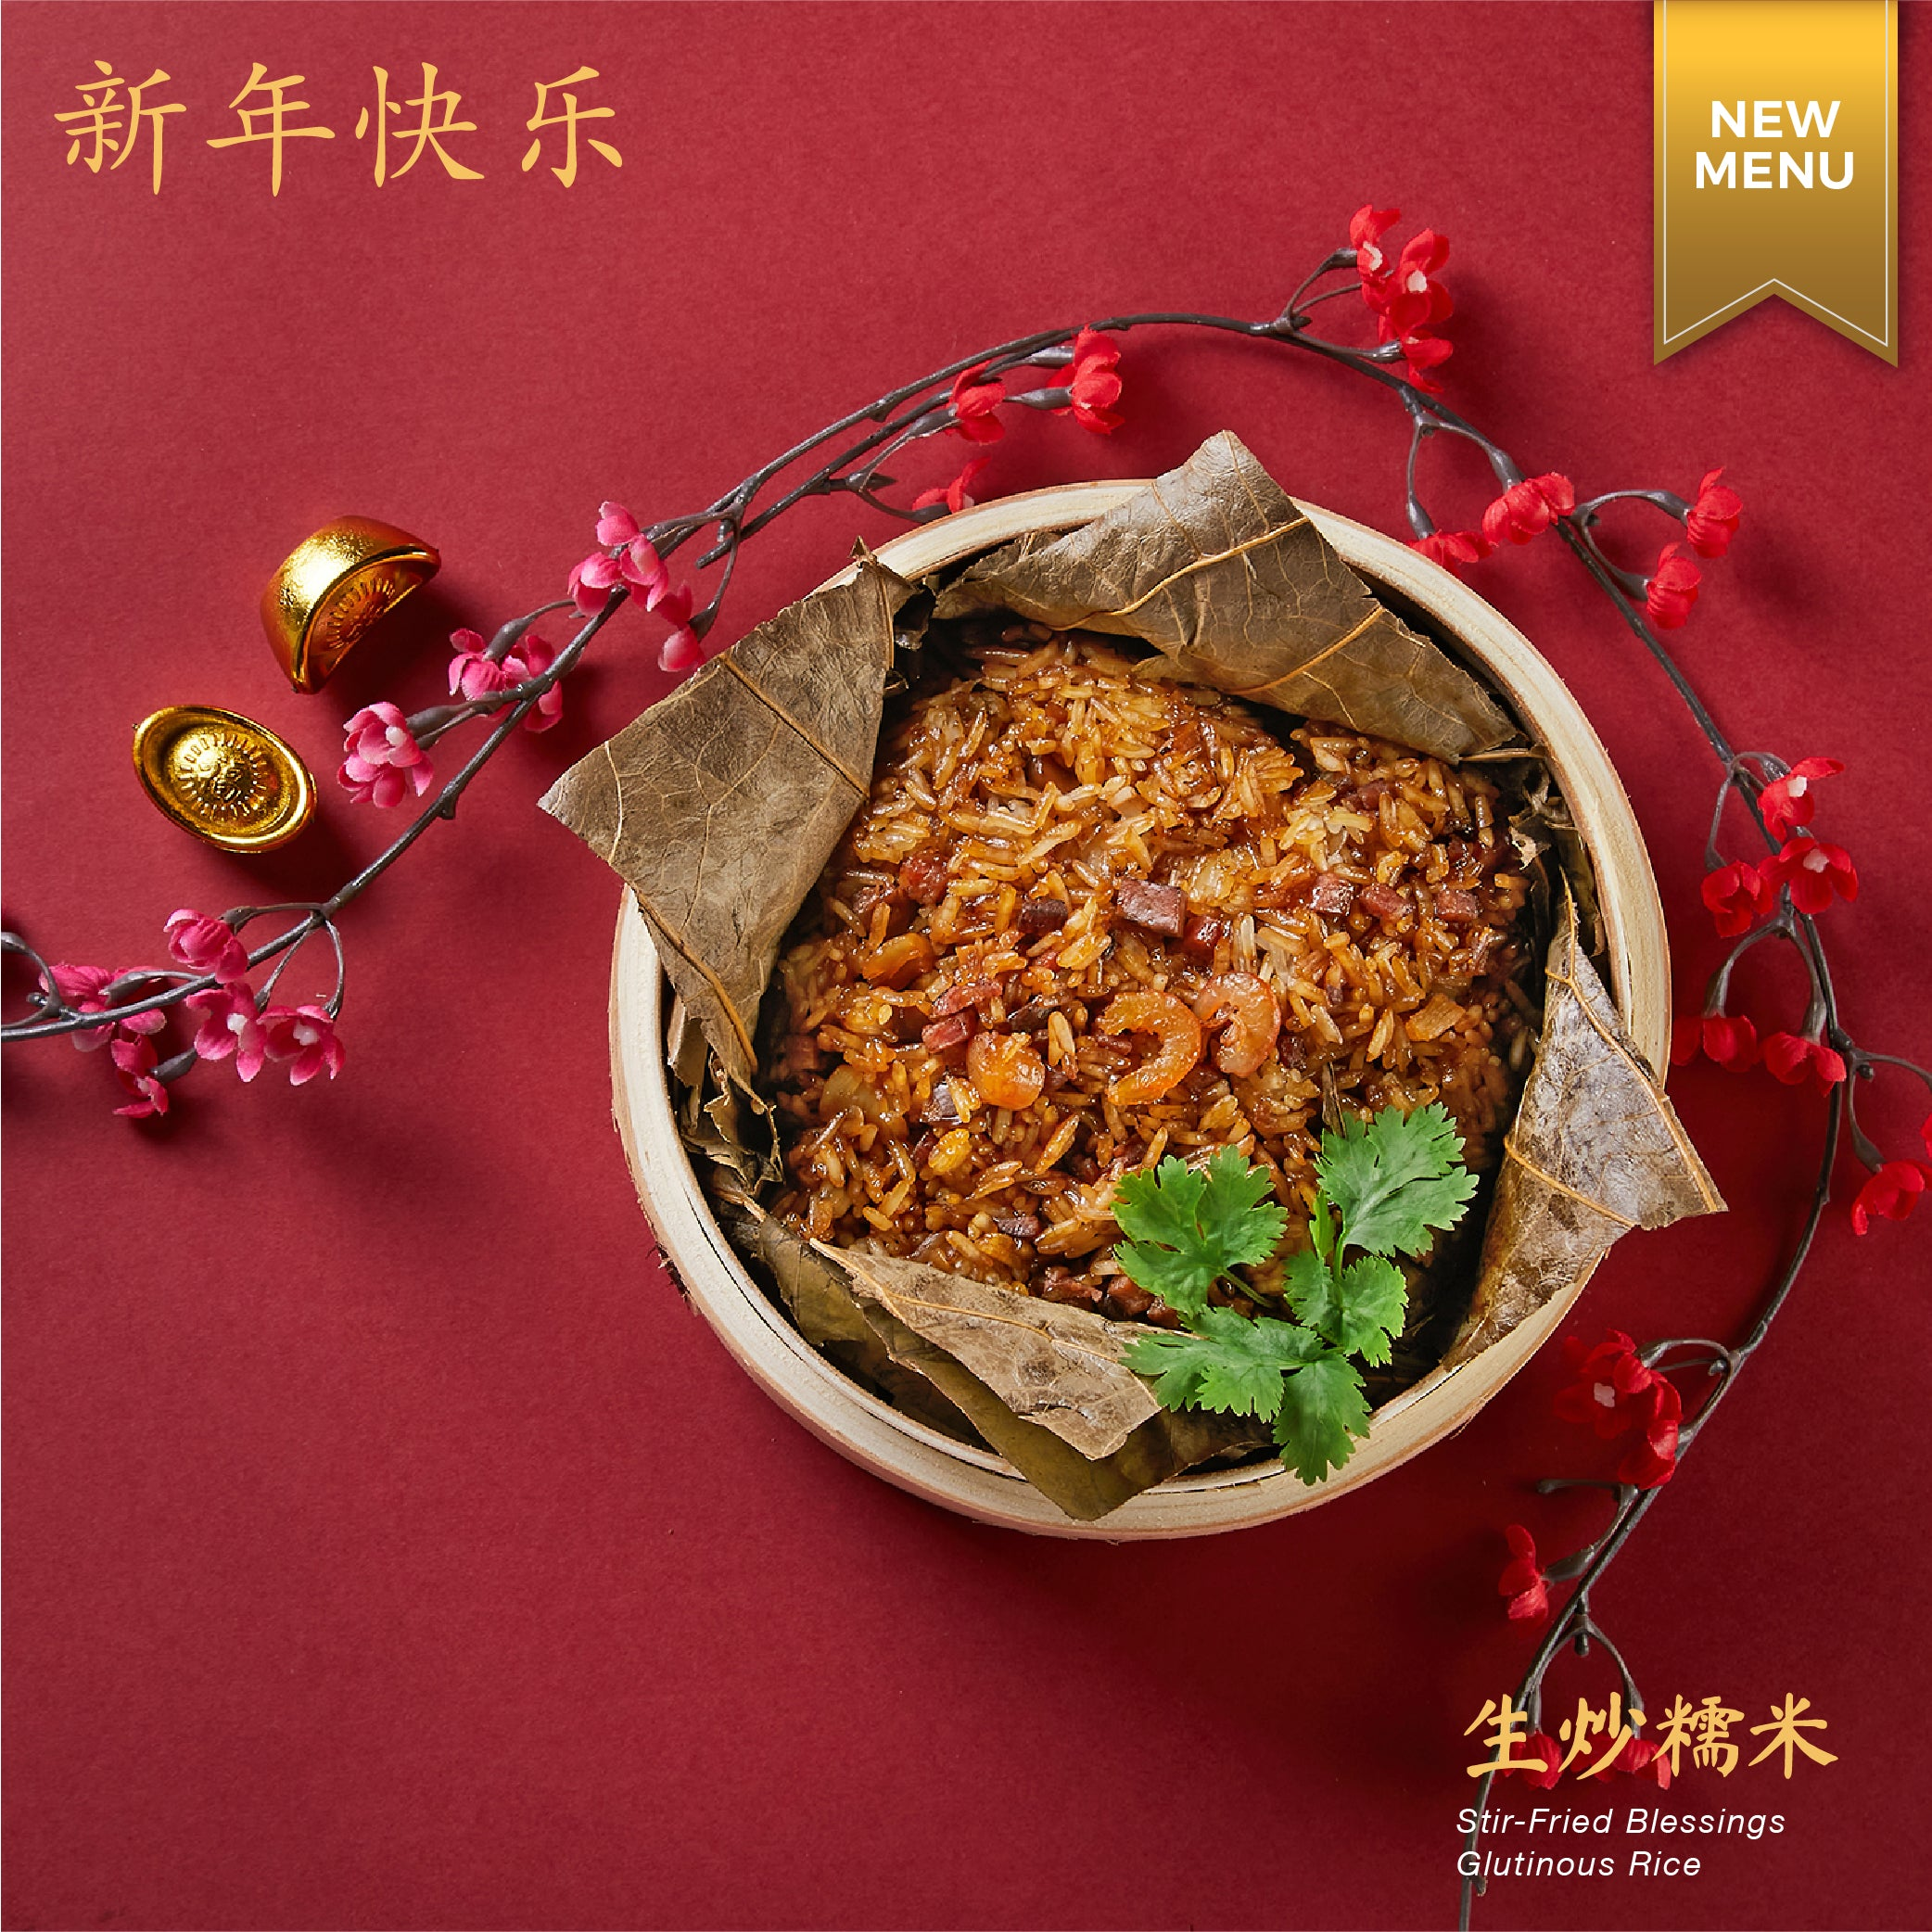 Stir-Fried Blessings Glutinous Rice (生炒糯米)